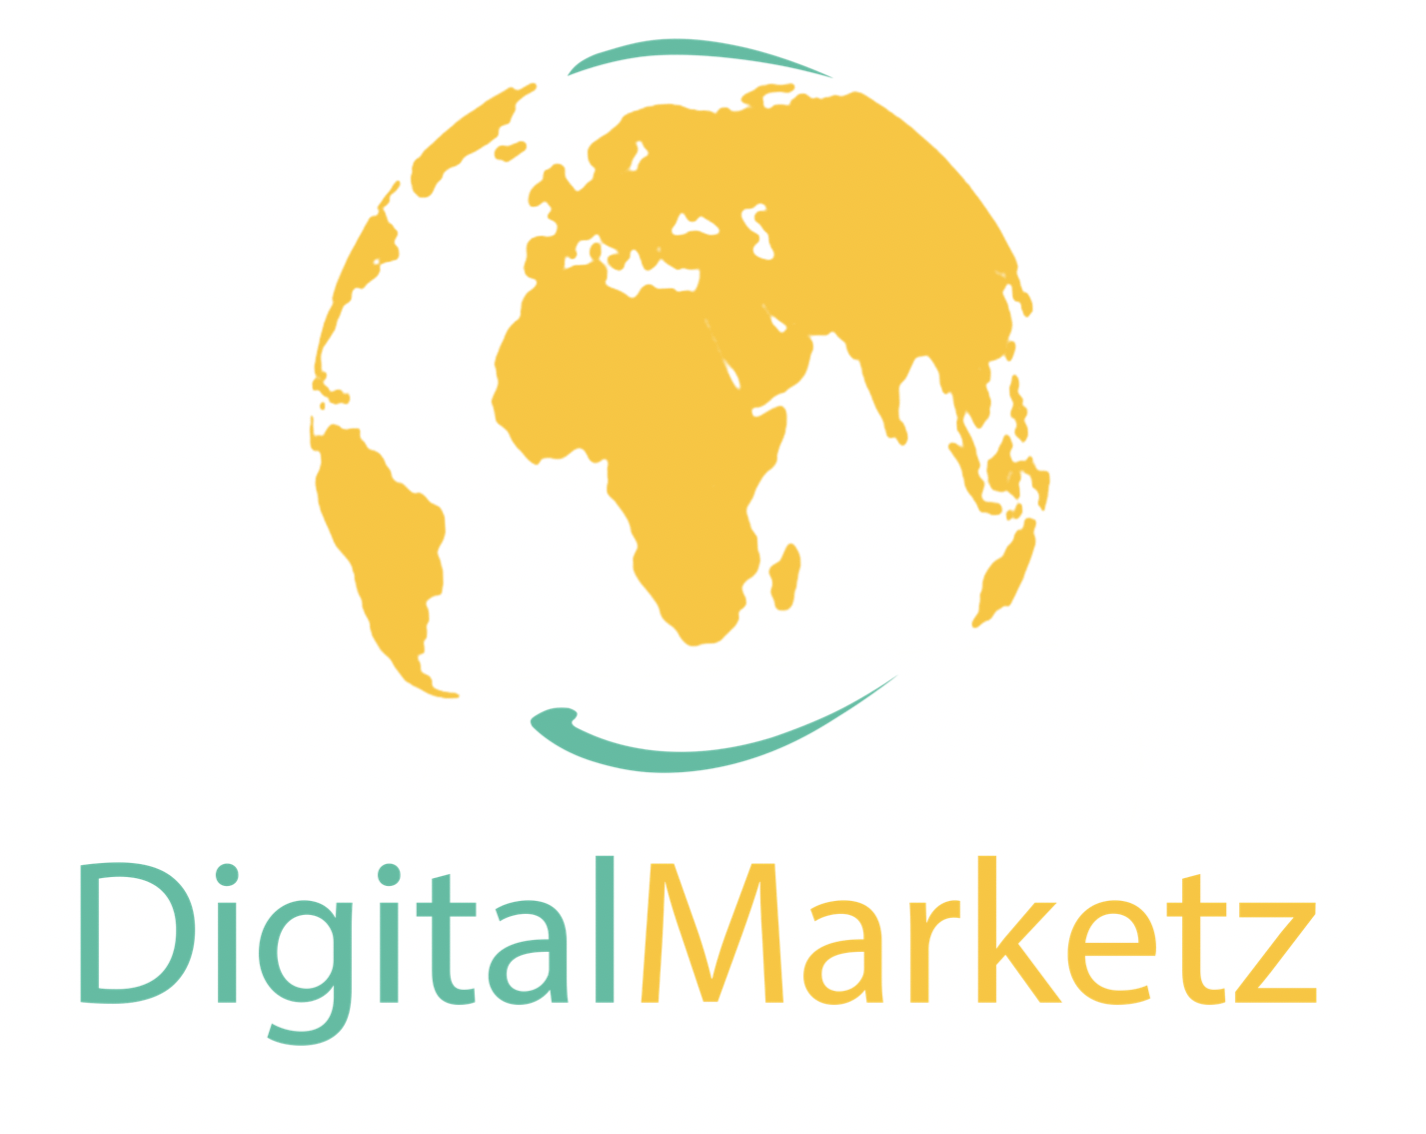 Digital-Marketz.de